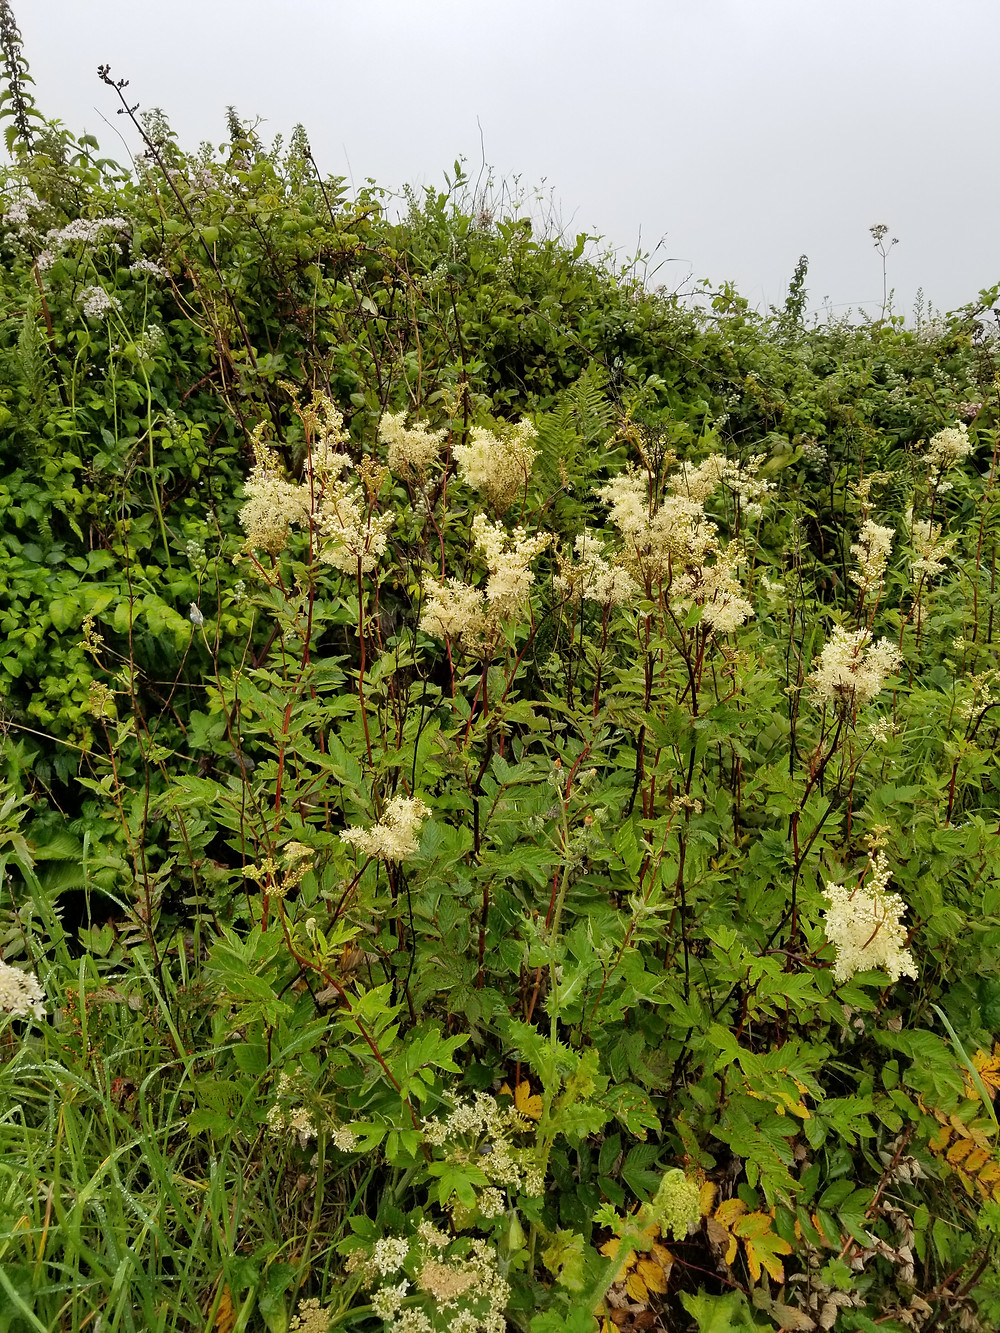 4.	Doolin Pt roadside herbs: Meadowsweet, valerian, stinging nettles and sedge grass. Maybe there is greater burnet at the bottom left.